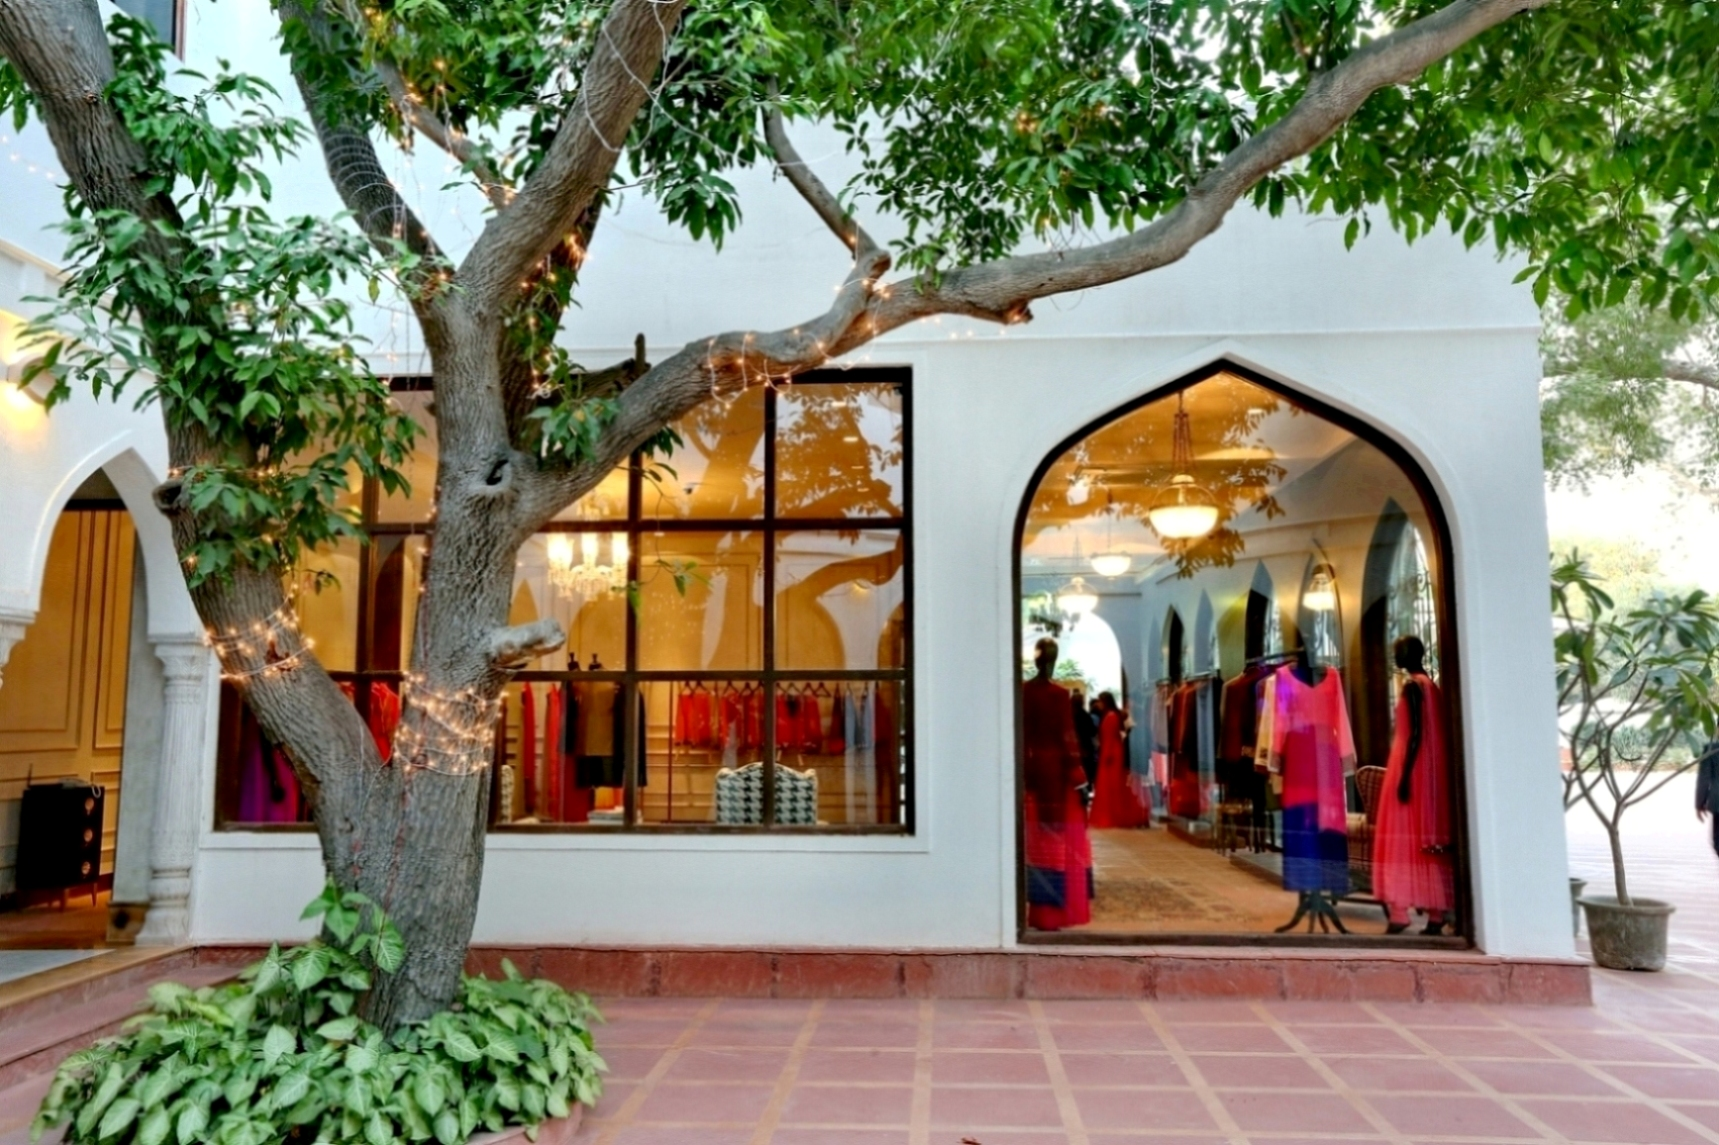 Manish malhotra opens flagship store in delhi igrow for Exterior standalone retail